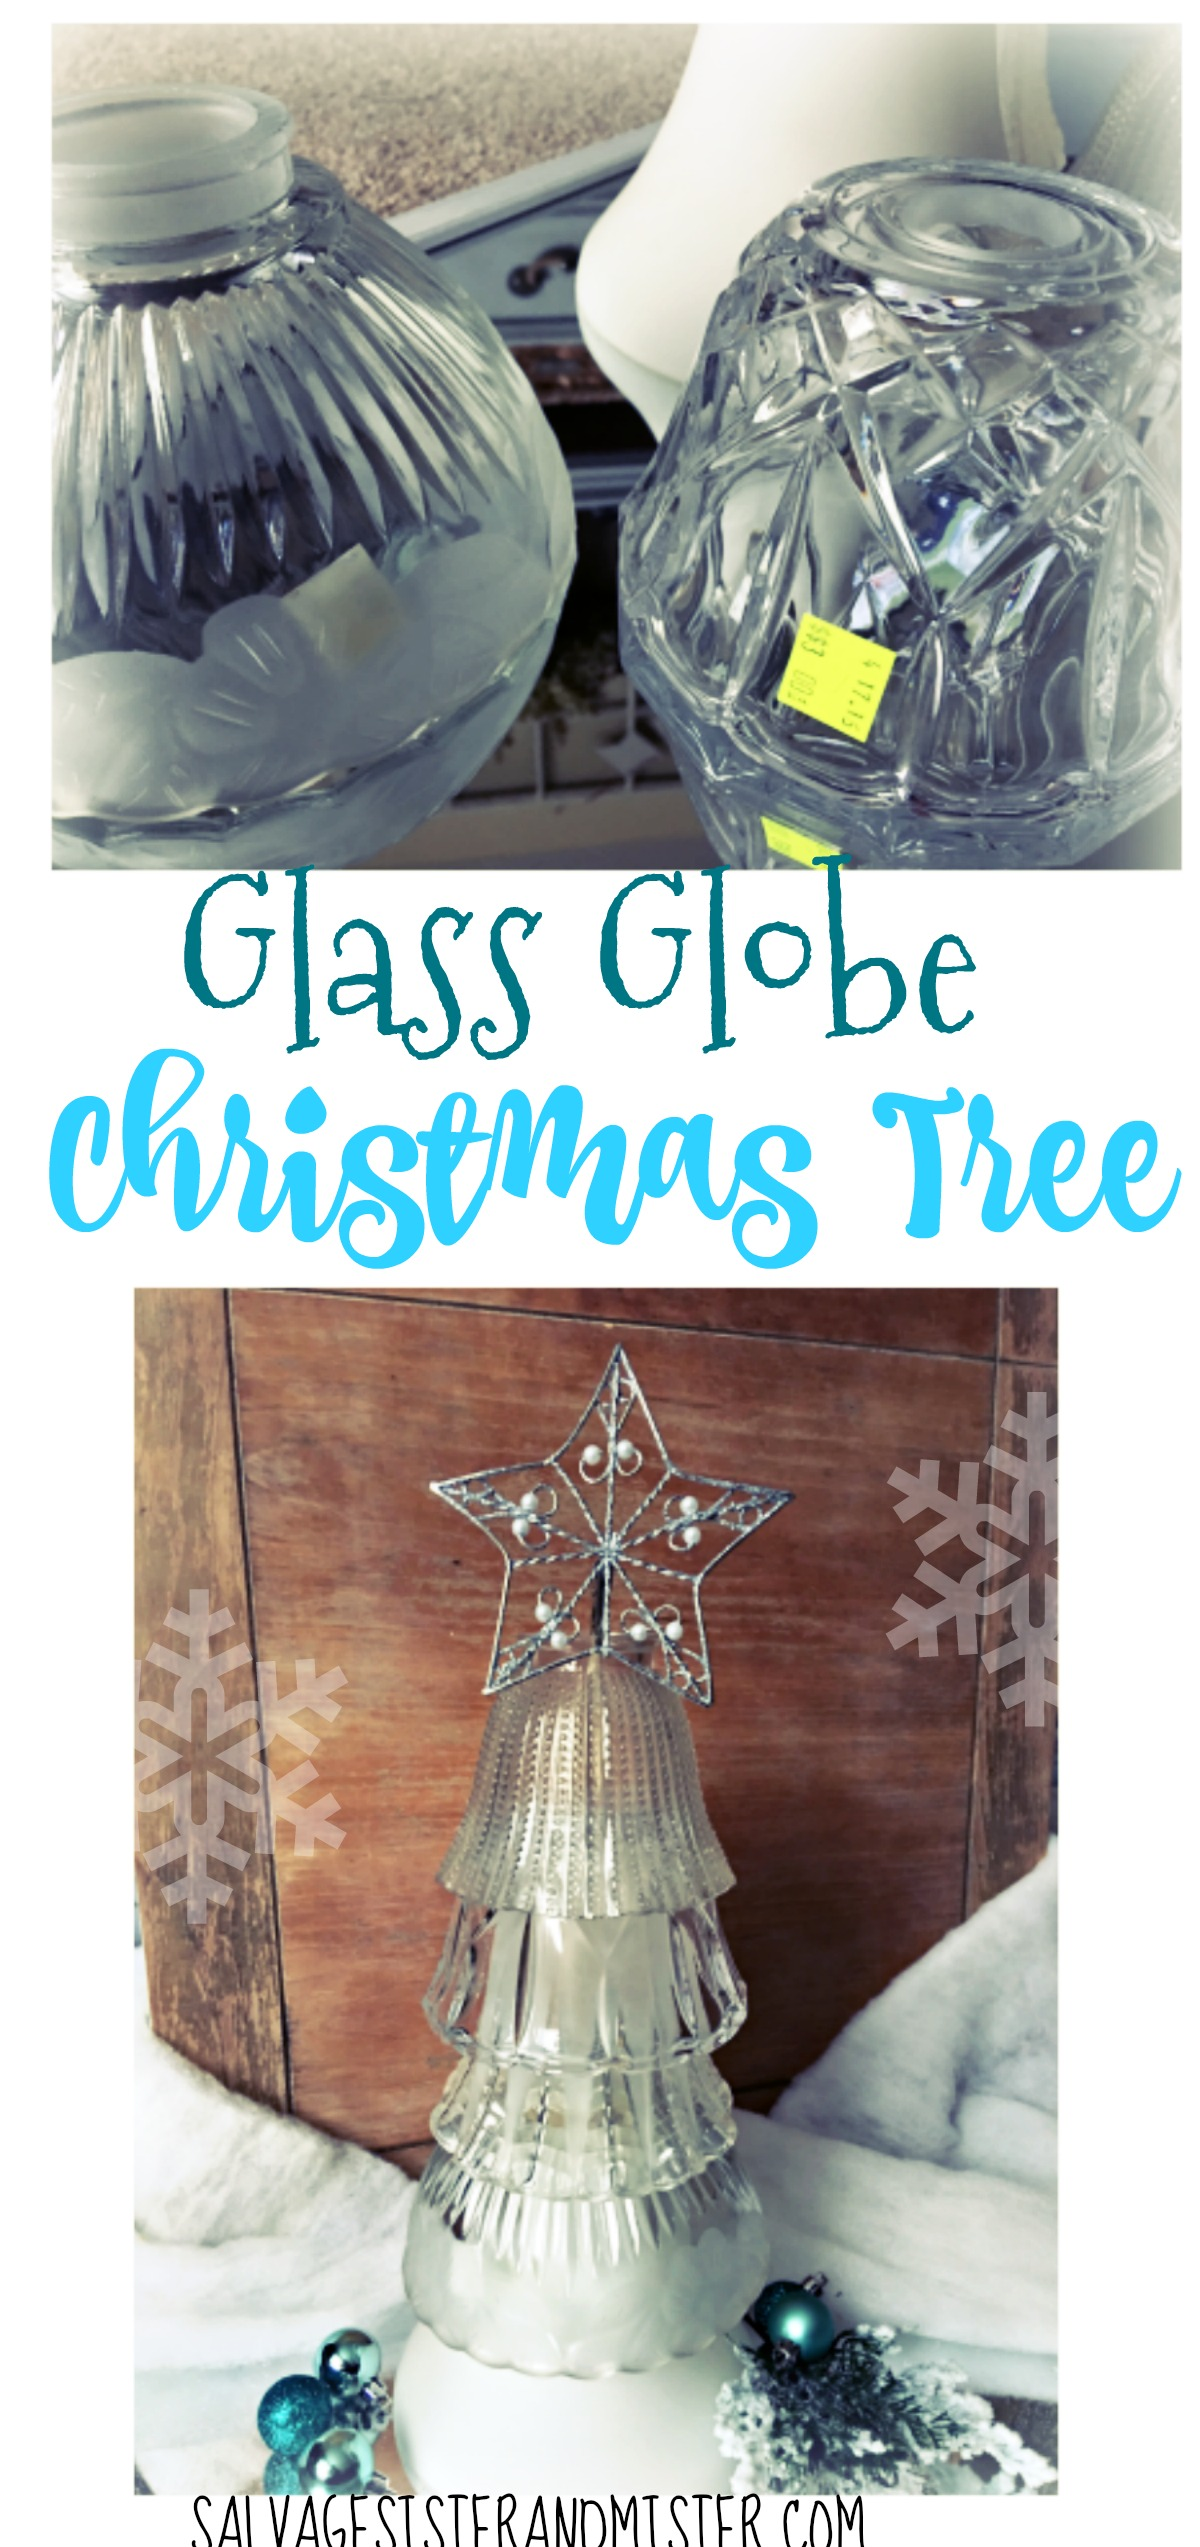 Glass globe christmas trees from thrifted globes. Old discarded glass fixtures can be upcycled into this easy christmas decor. Very inexpensive ot make . You can do this permanently or temporarily. Super easy craft!